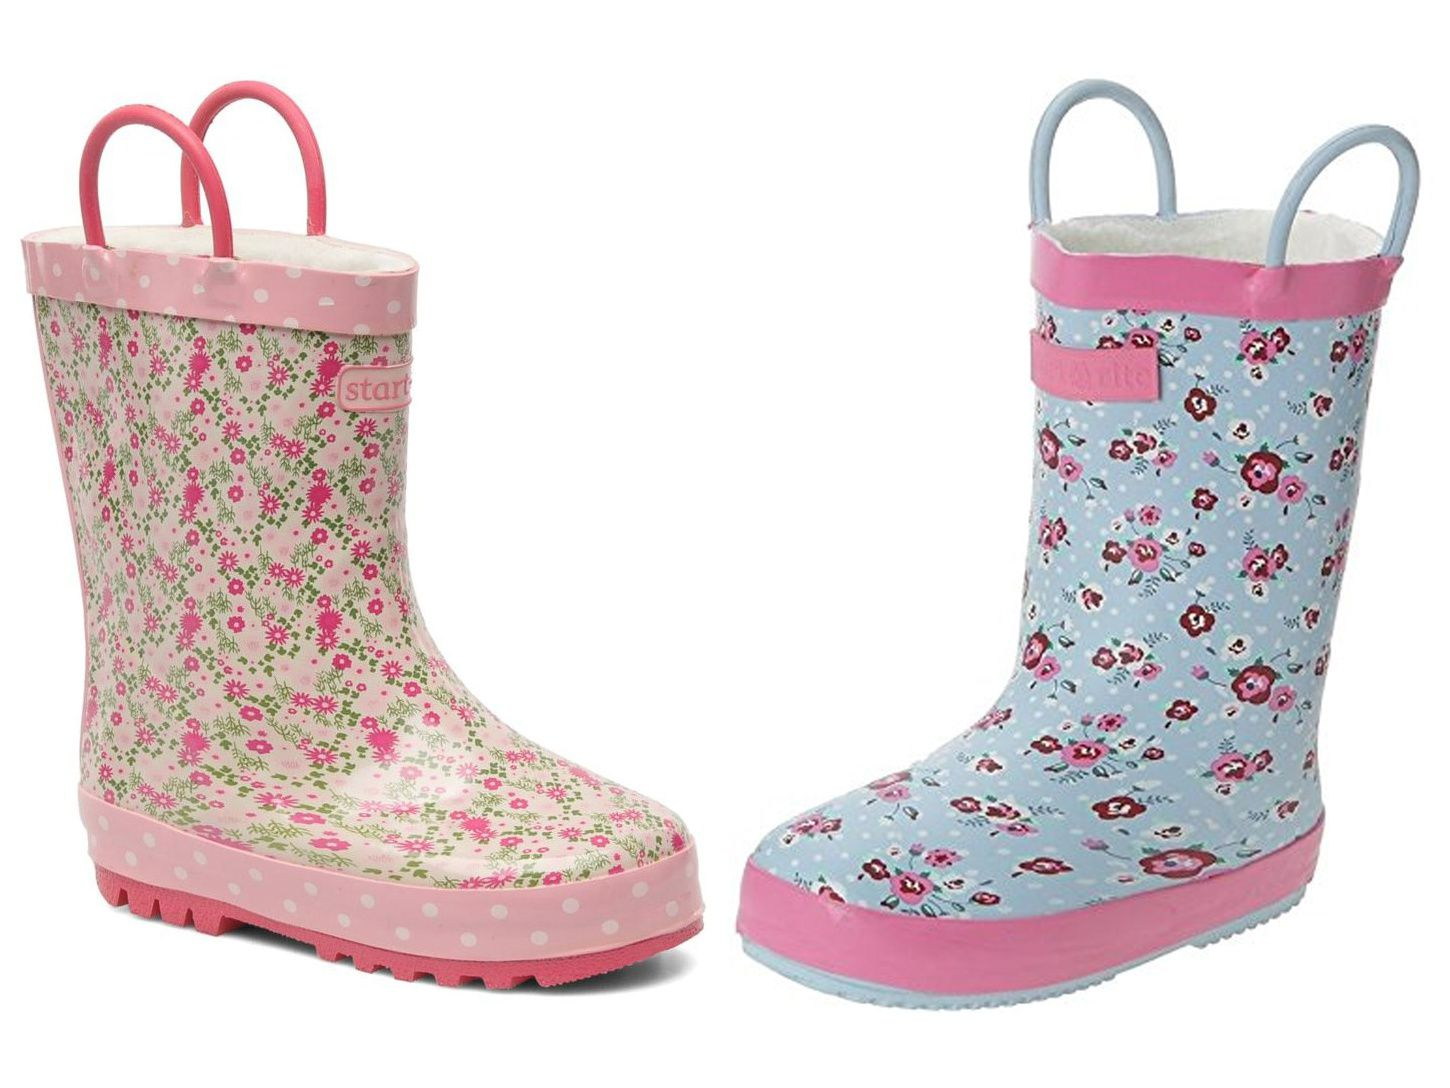 ma s lection bottes de pluie enfant fille liberty gar on ray marine start rite be only. Black Bedroom Furniture Sets. Home Design Ideas